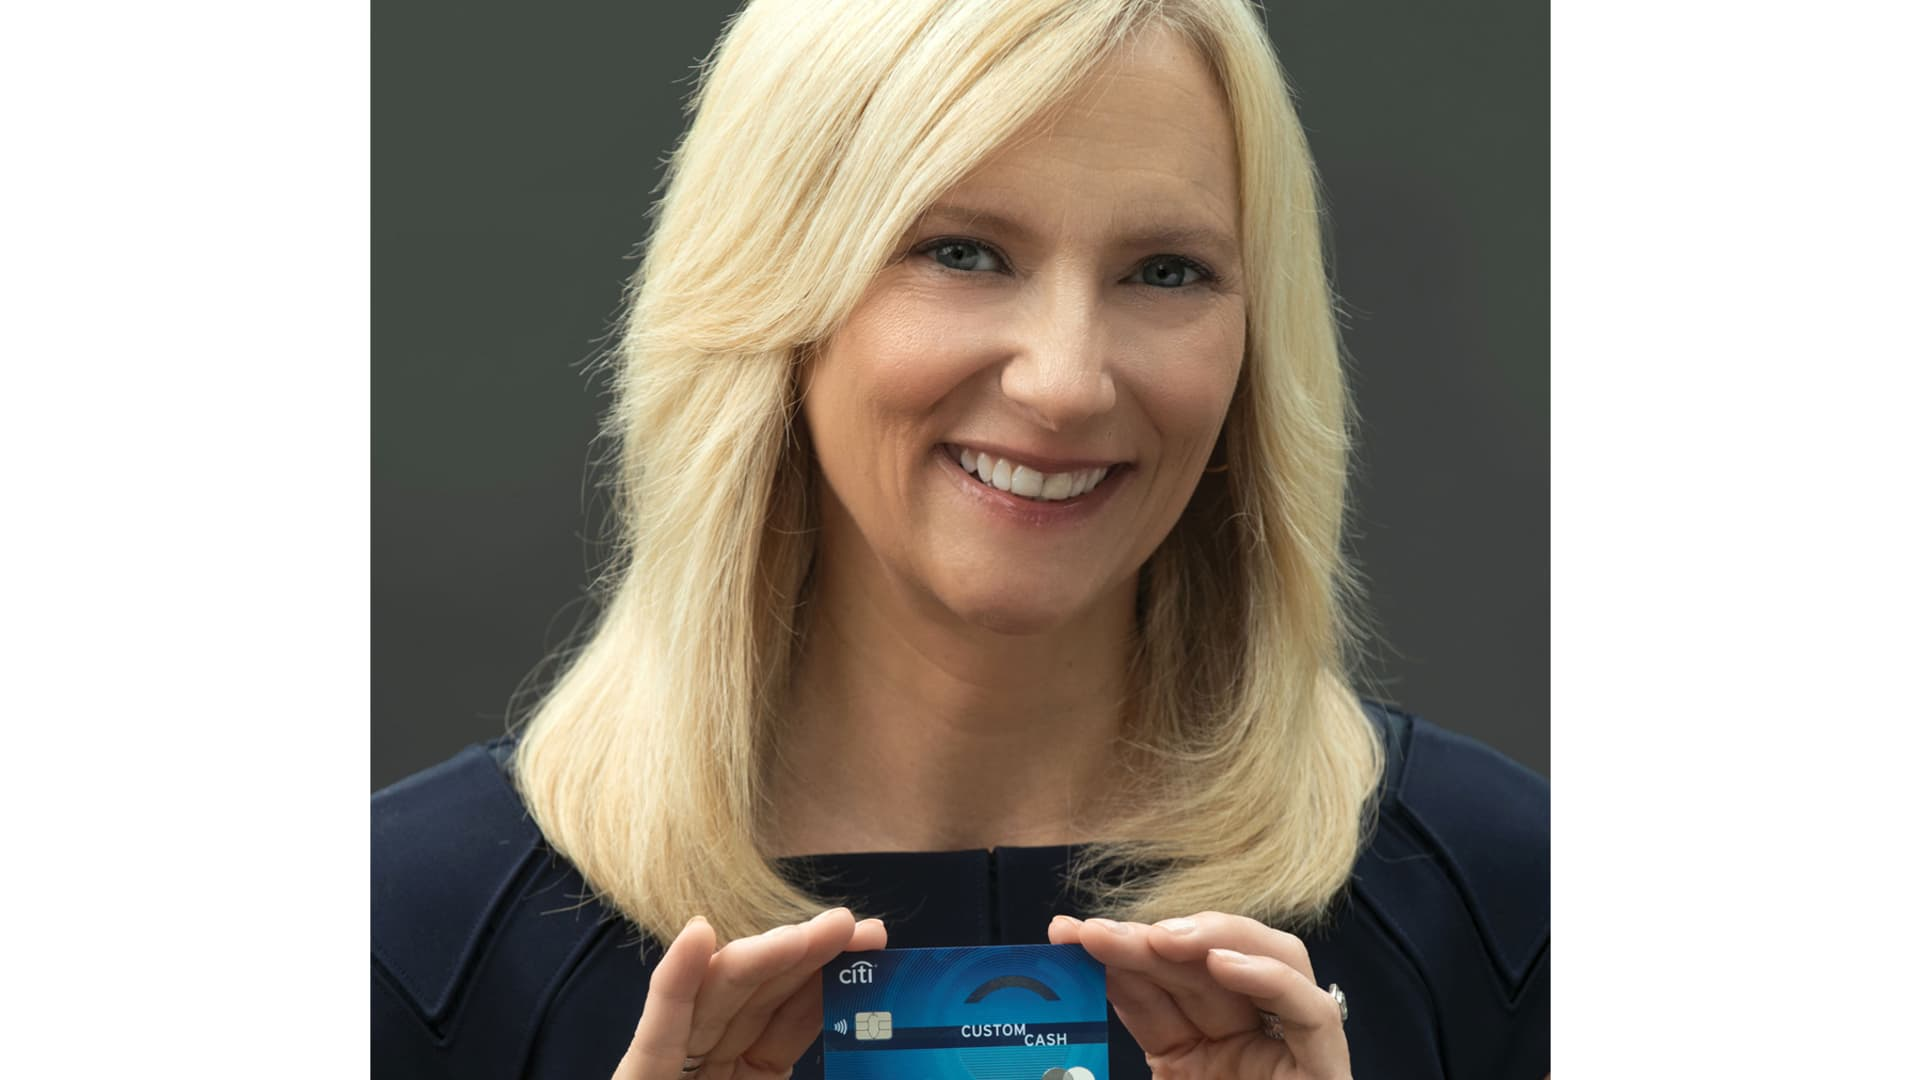 Pam Habner, Citigroup's Head of US Branded Cards